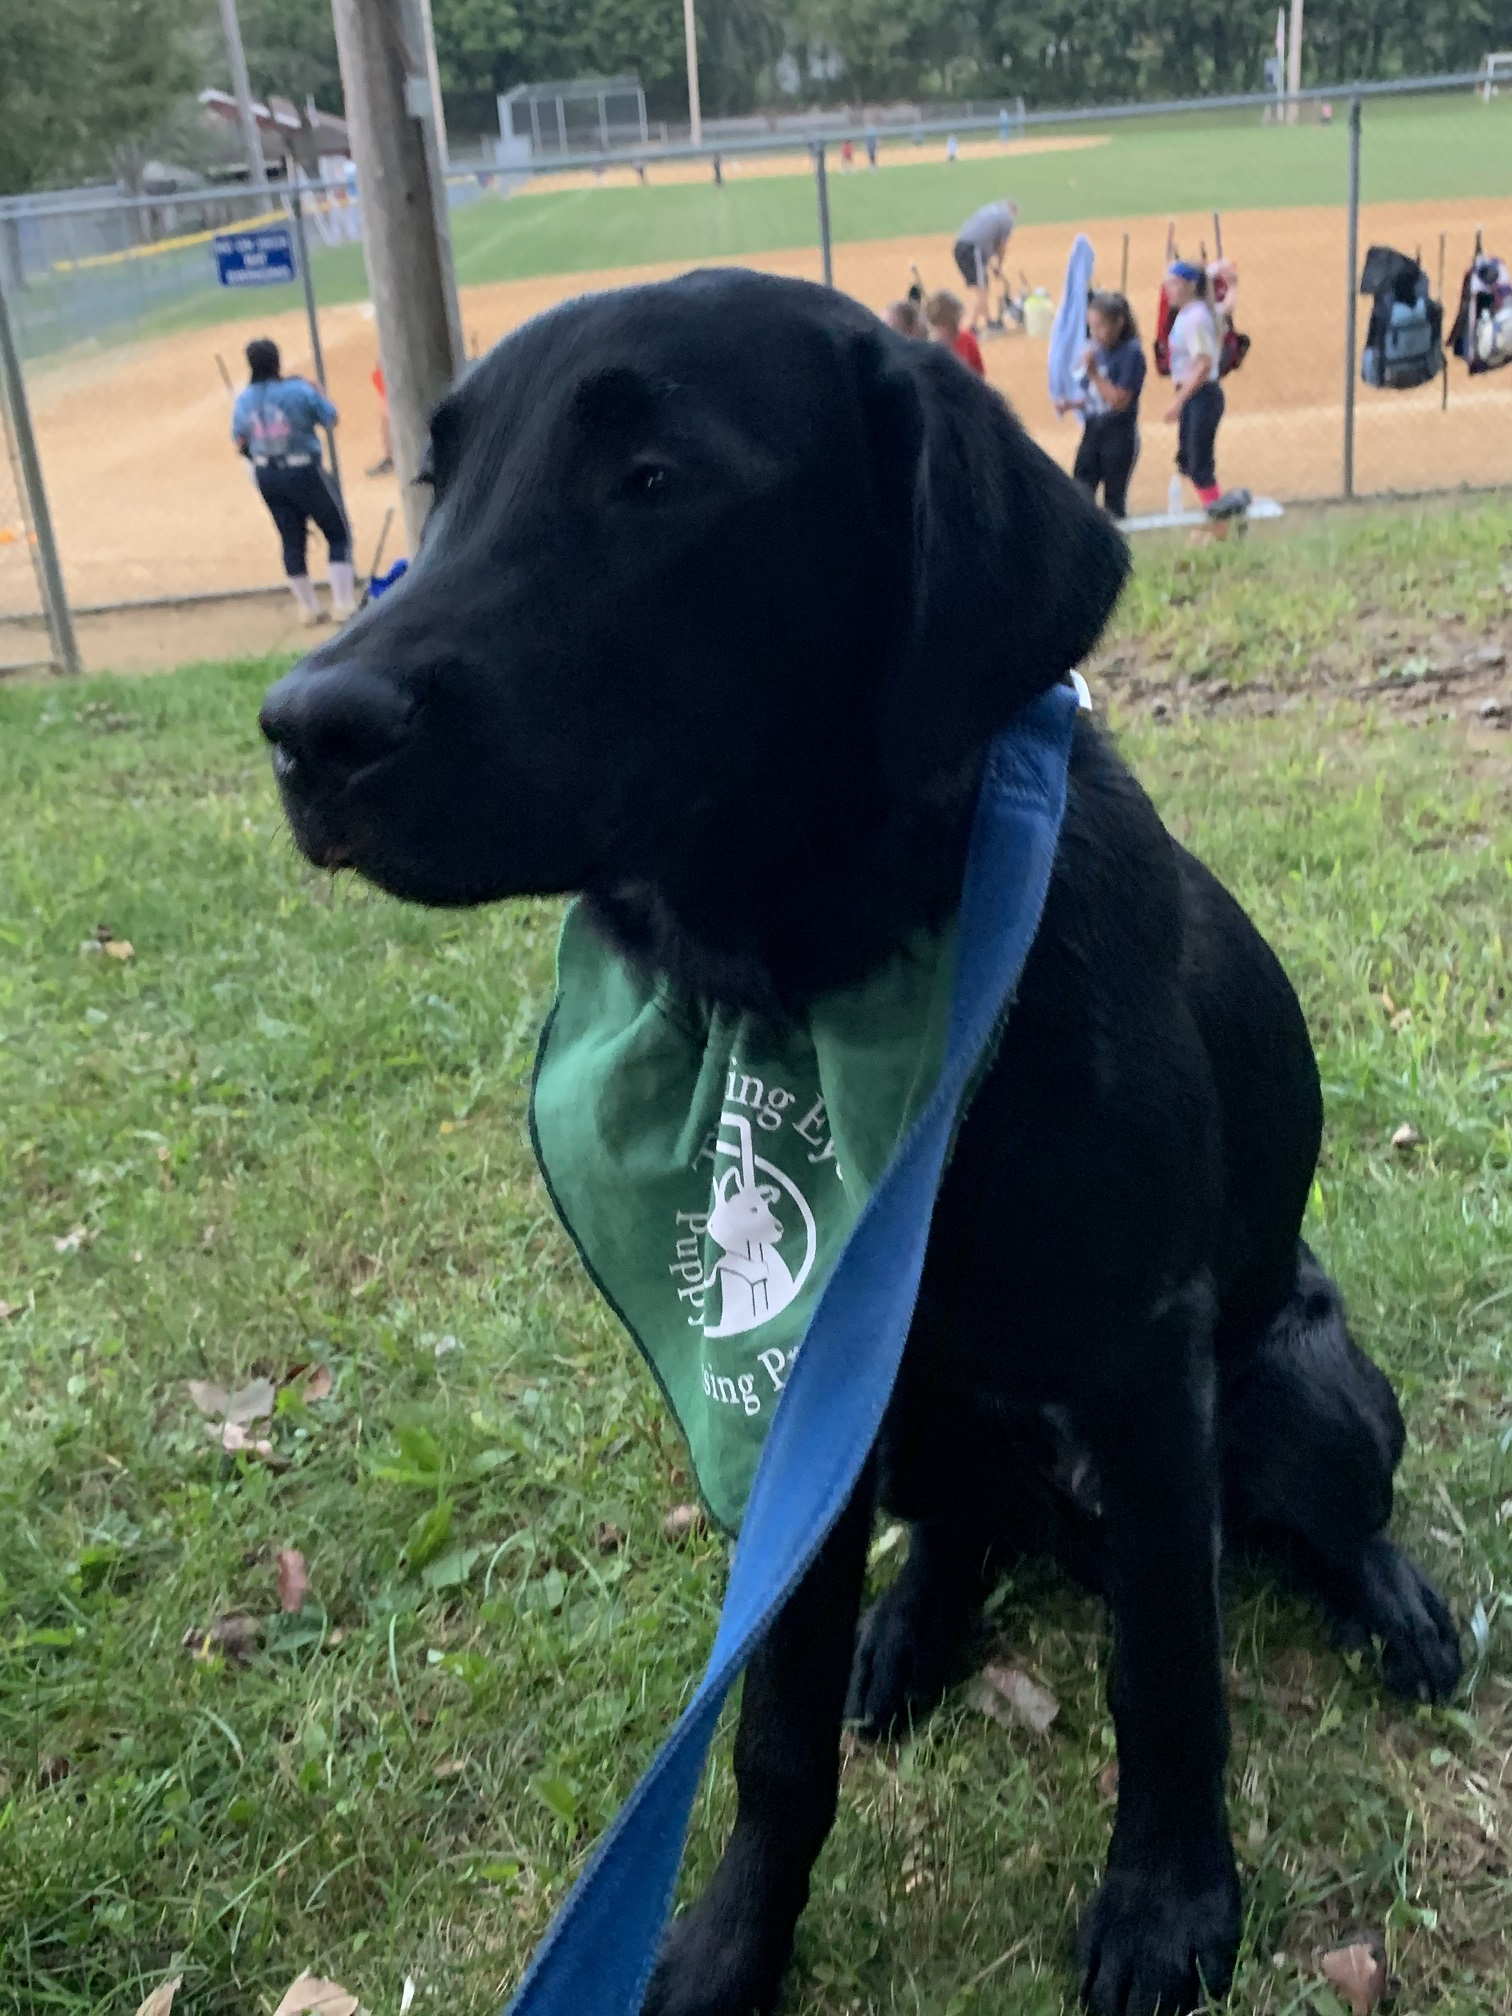 A black Lab puppy sits in the grass while kids play softball behind him.